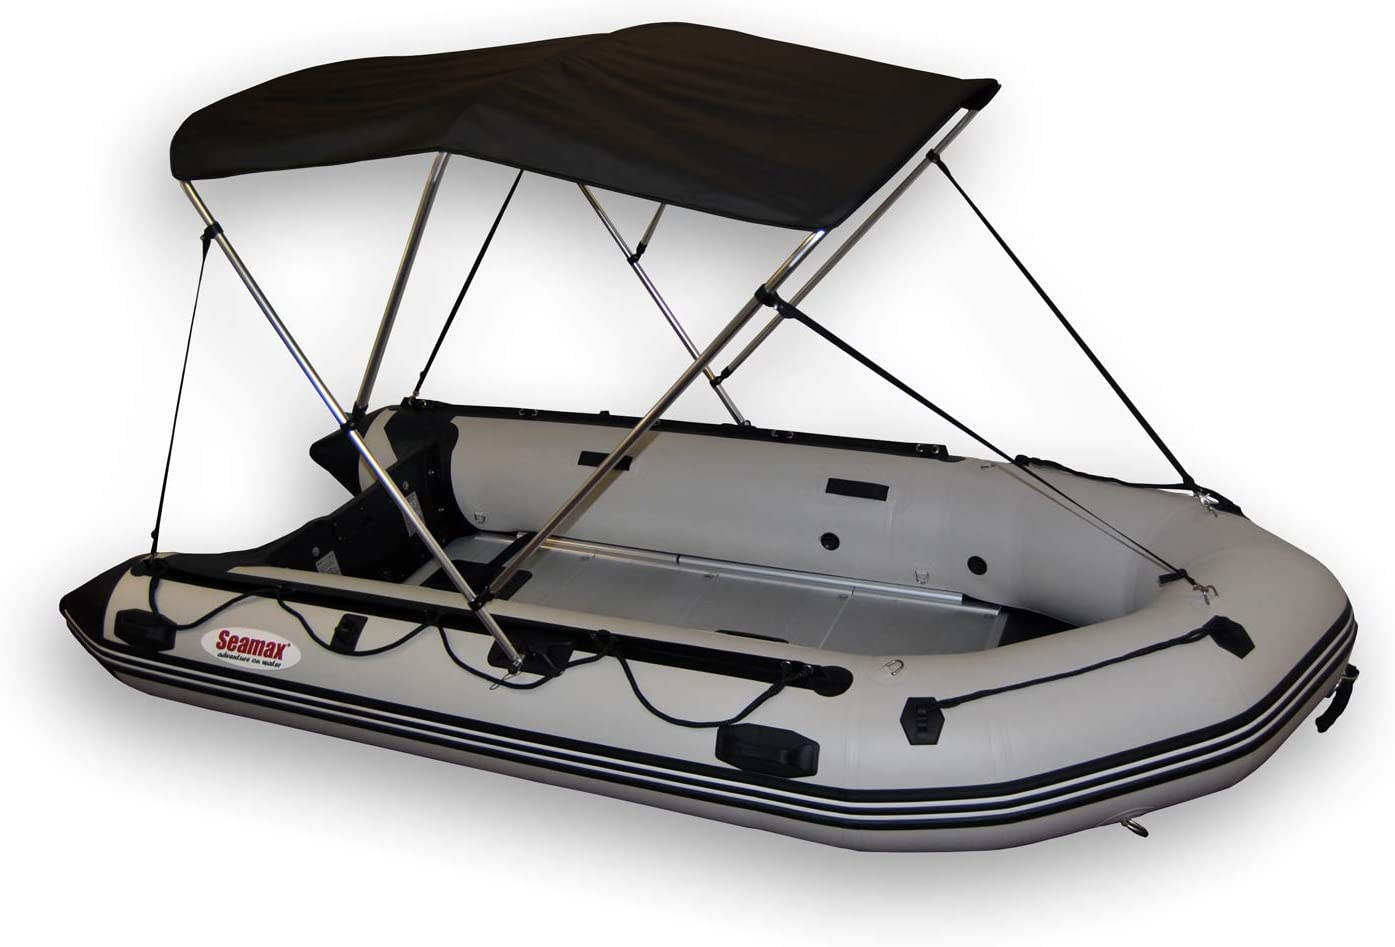 Seamander Bimini Top for Inflatable Boat,Rib Boat Cover with Mounting Hardware